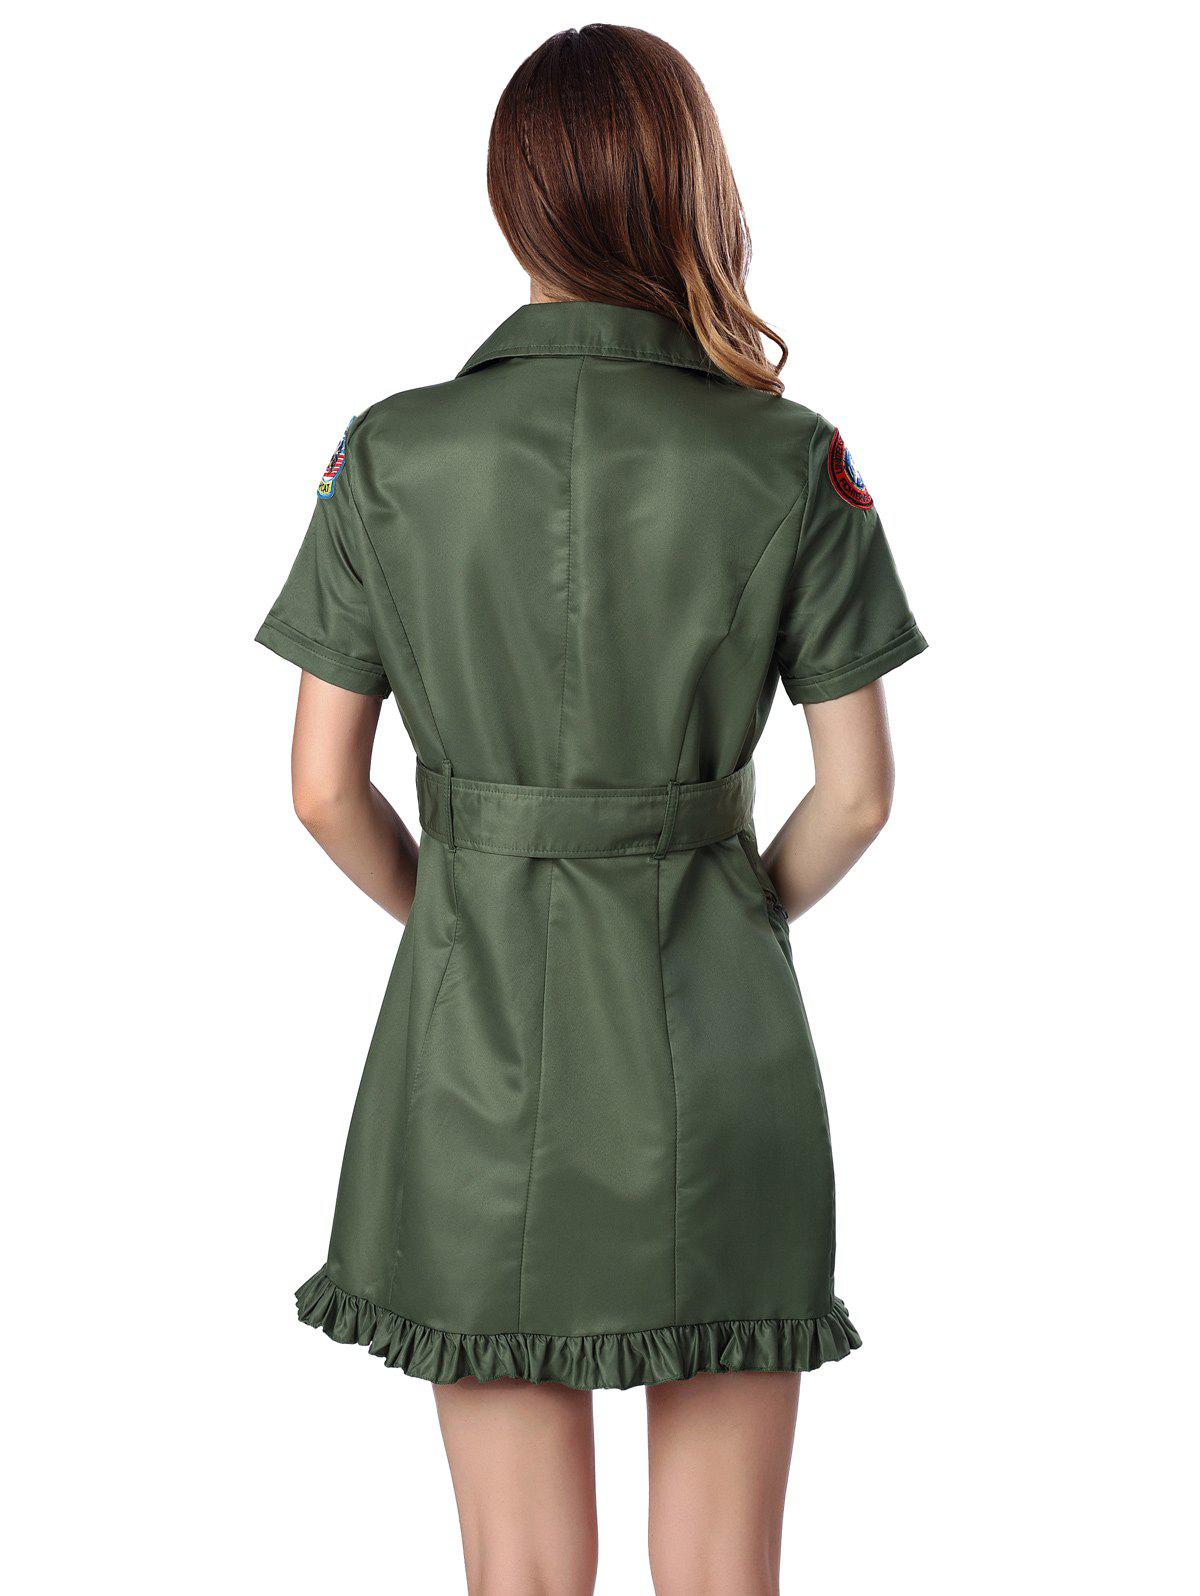 Zipped Applique Flounce Dress - ARMY GREEN XL